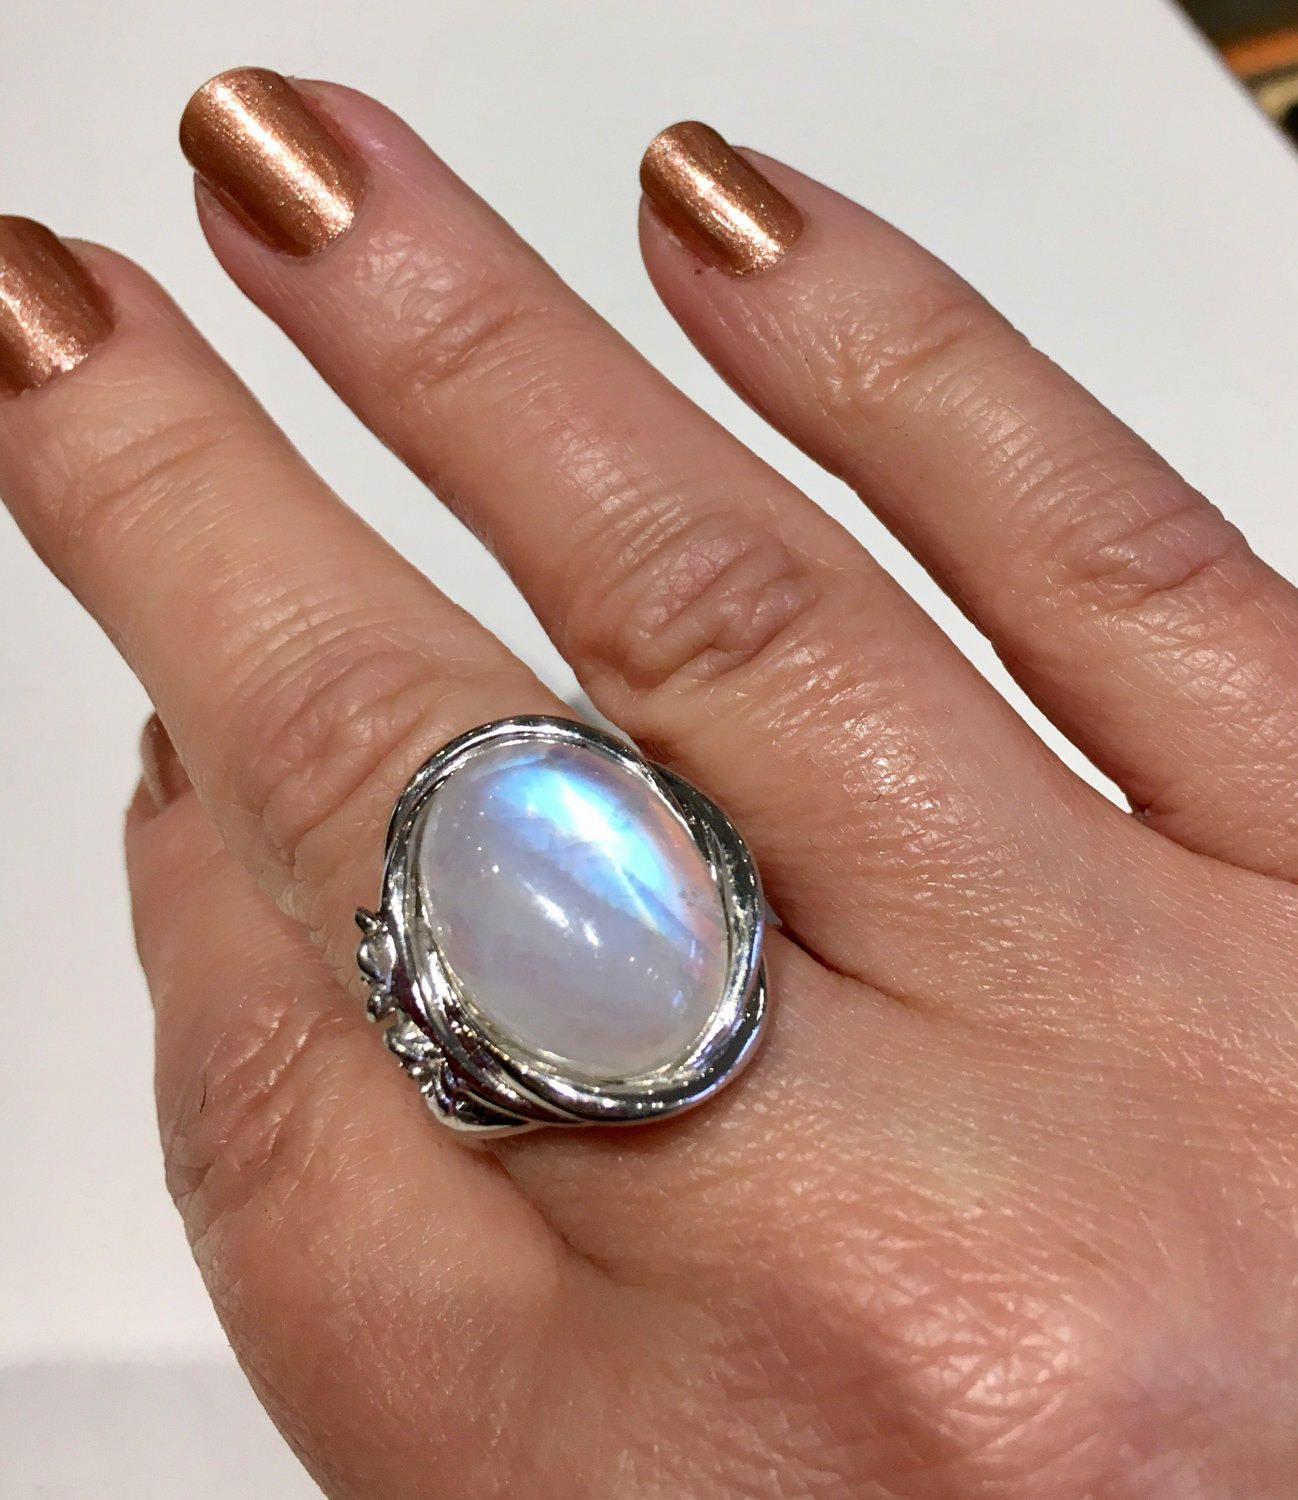 Large Moonstone Sterling Silver Vintage Ring with Flowers